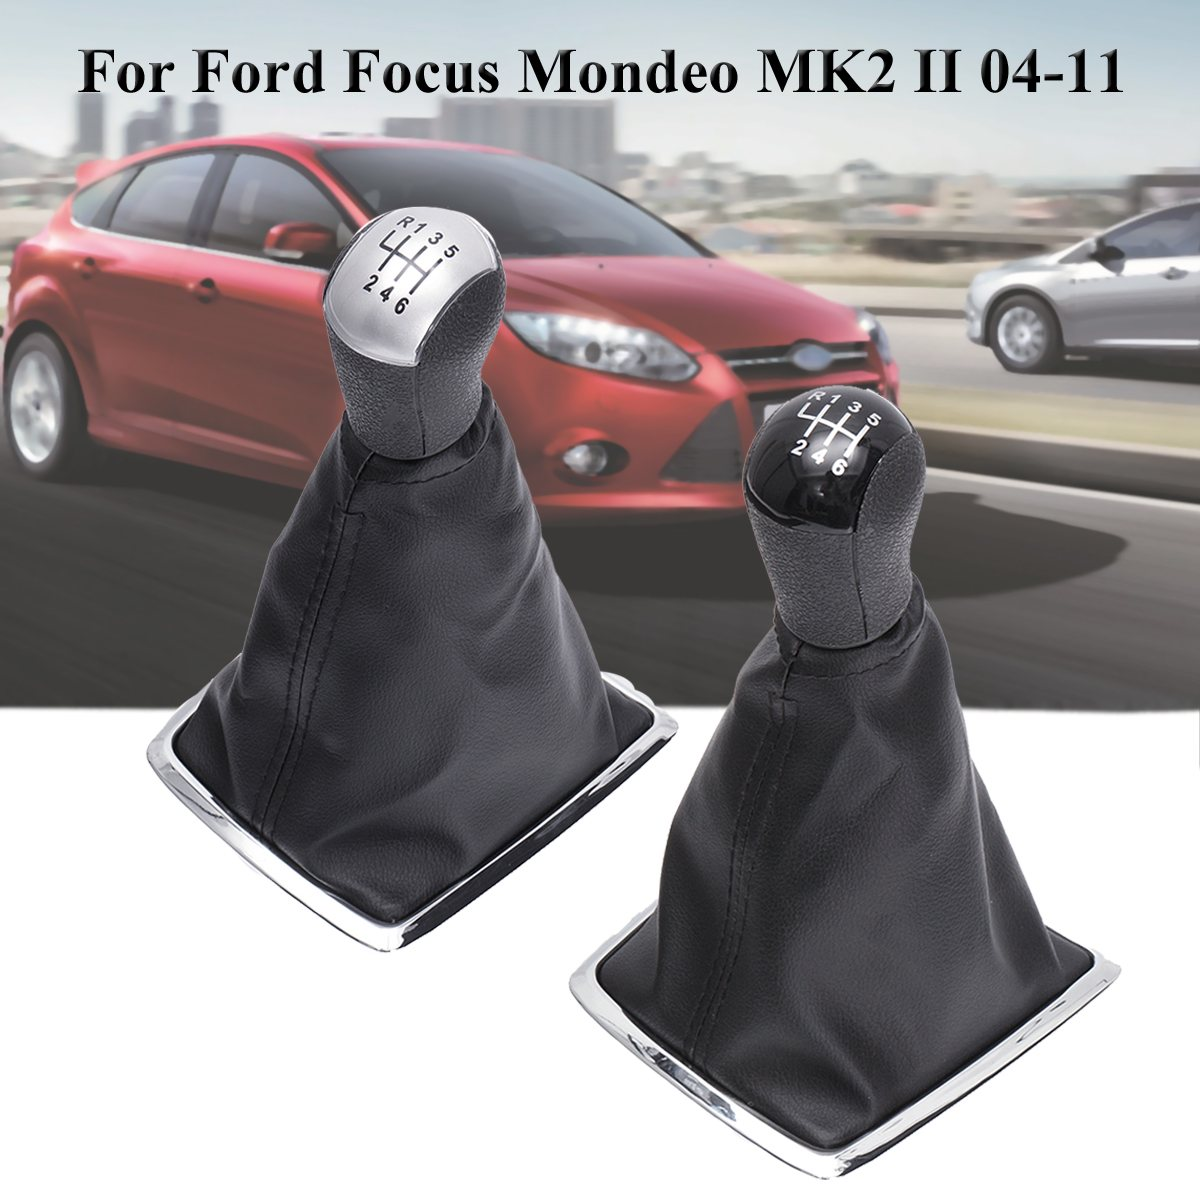 6 Speed PU leather Shift Knob Stick Lever Gaiter Cover For Ford for Focus for Mondeo MK2 II 2004-2011 6 44 2011